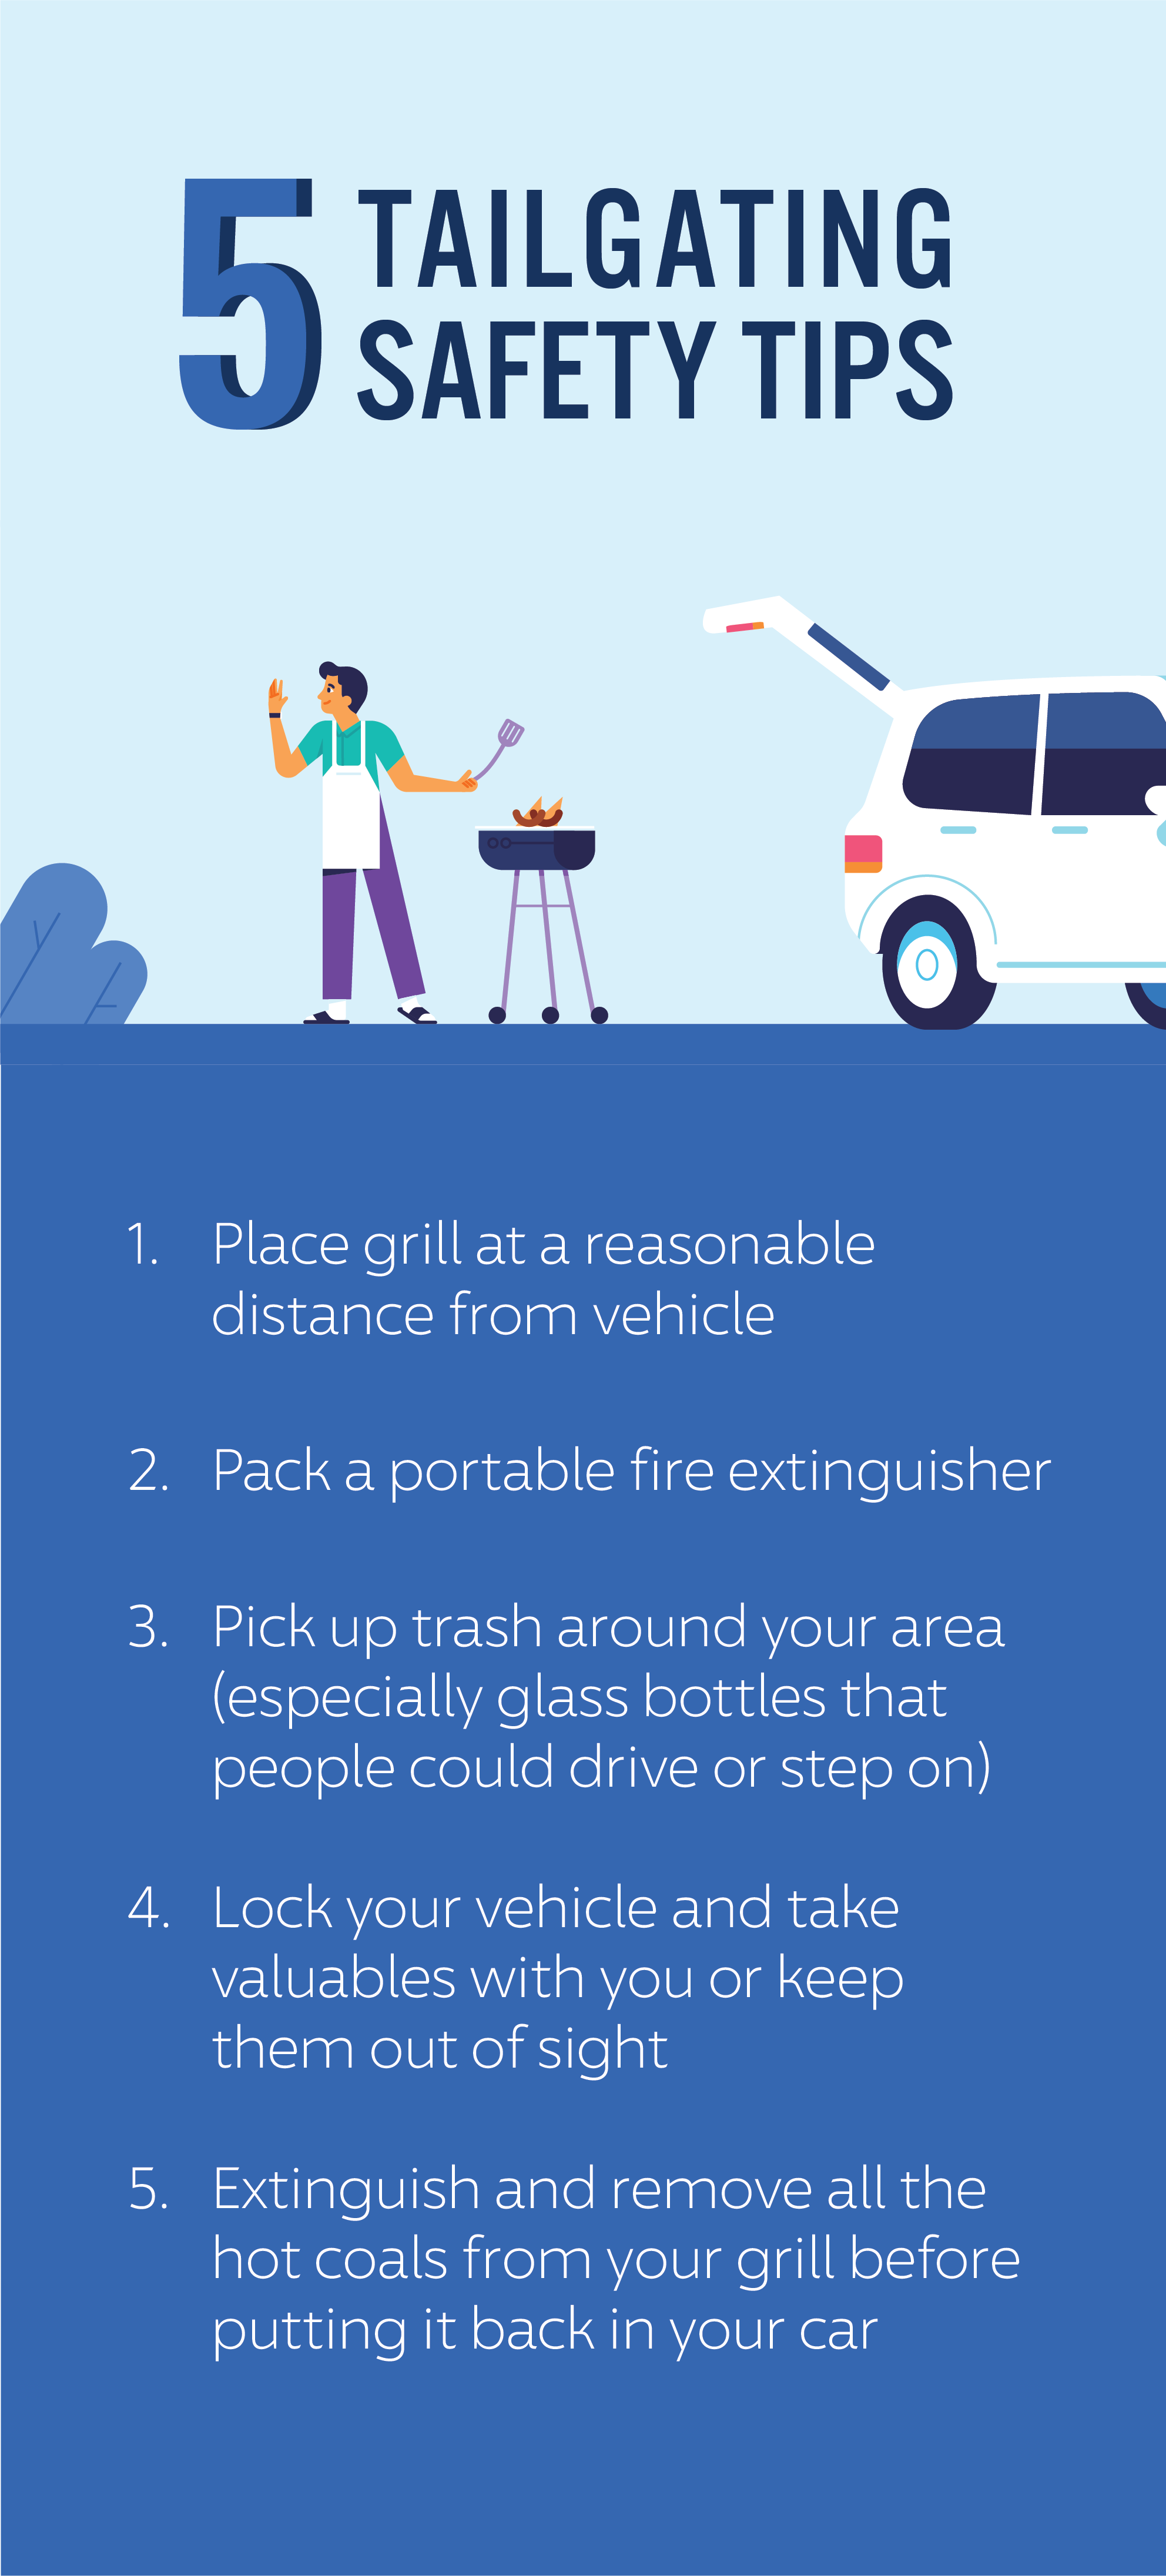 Tailgating Safety Tips Progressive insurance, Safety